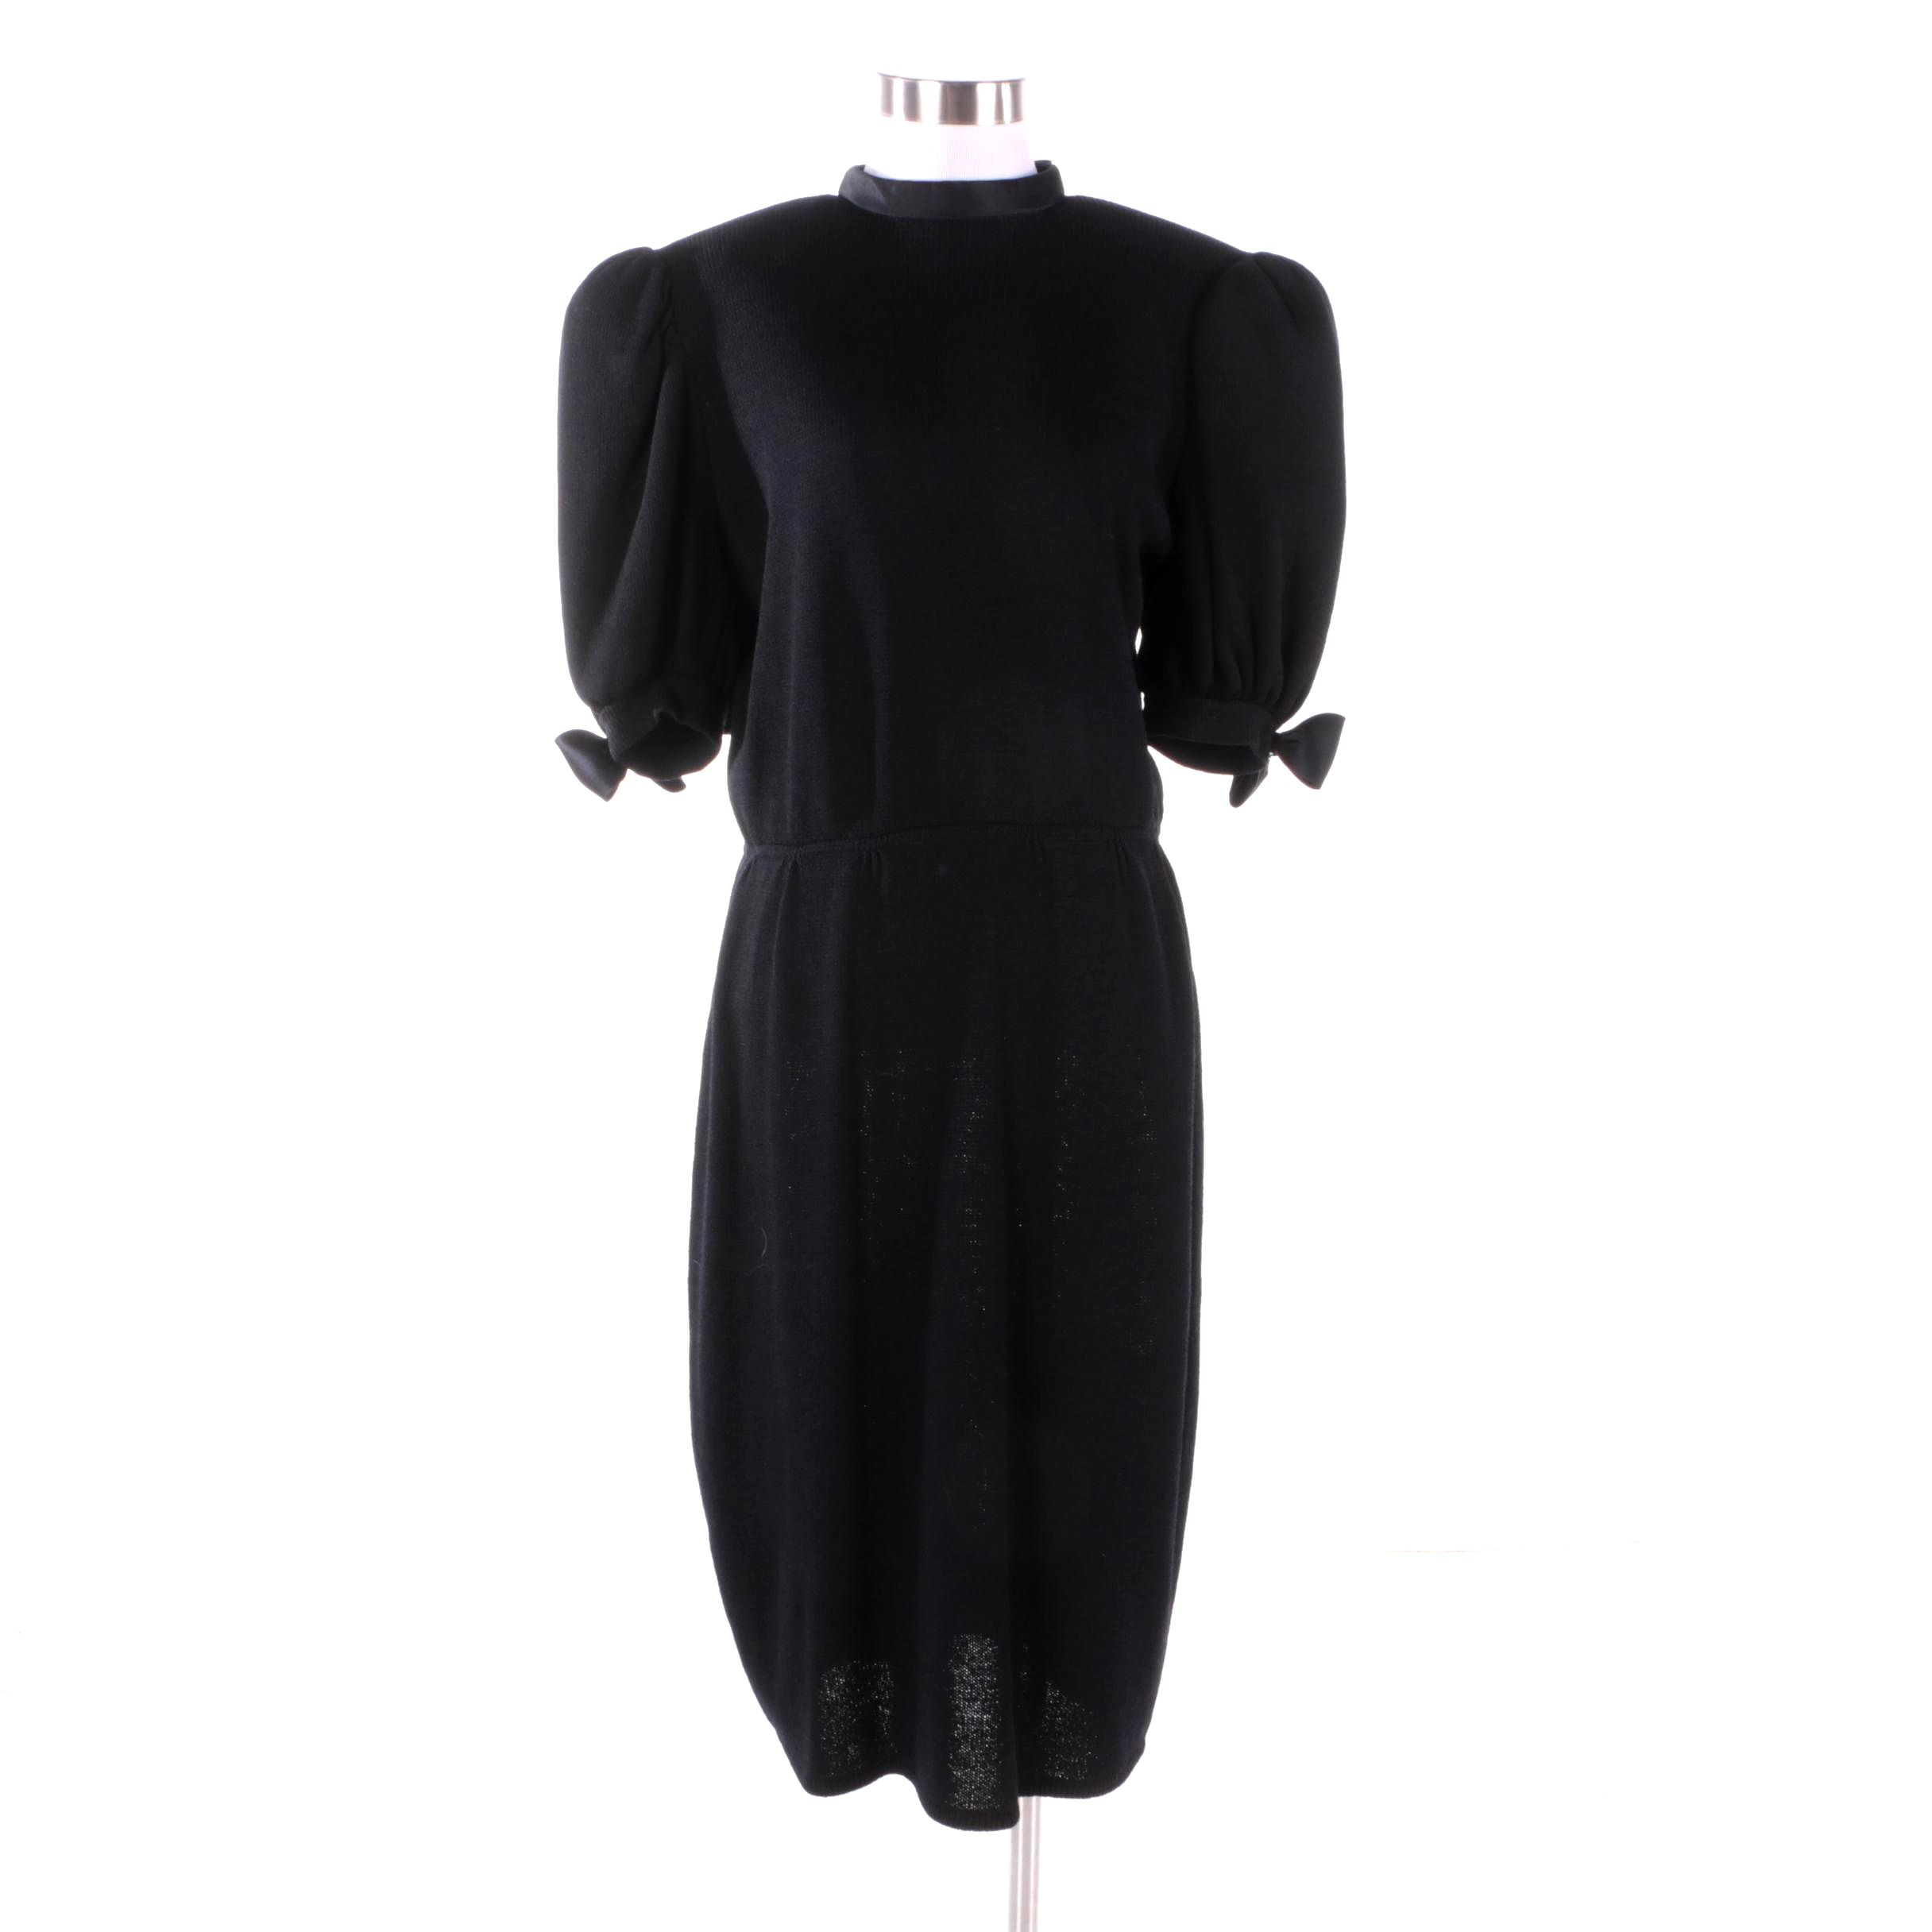 1980s Vintage St. John Black Knit Cocktail Dress with Bow and Rhinestone Detail